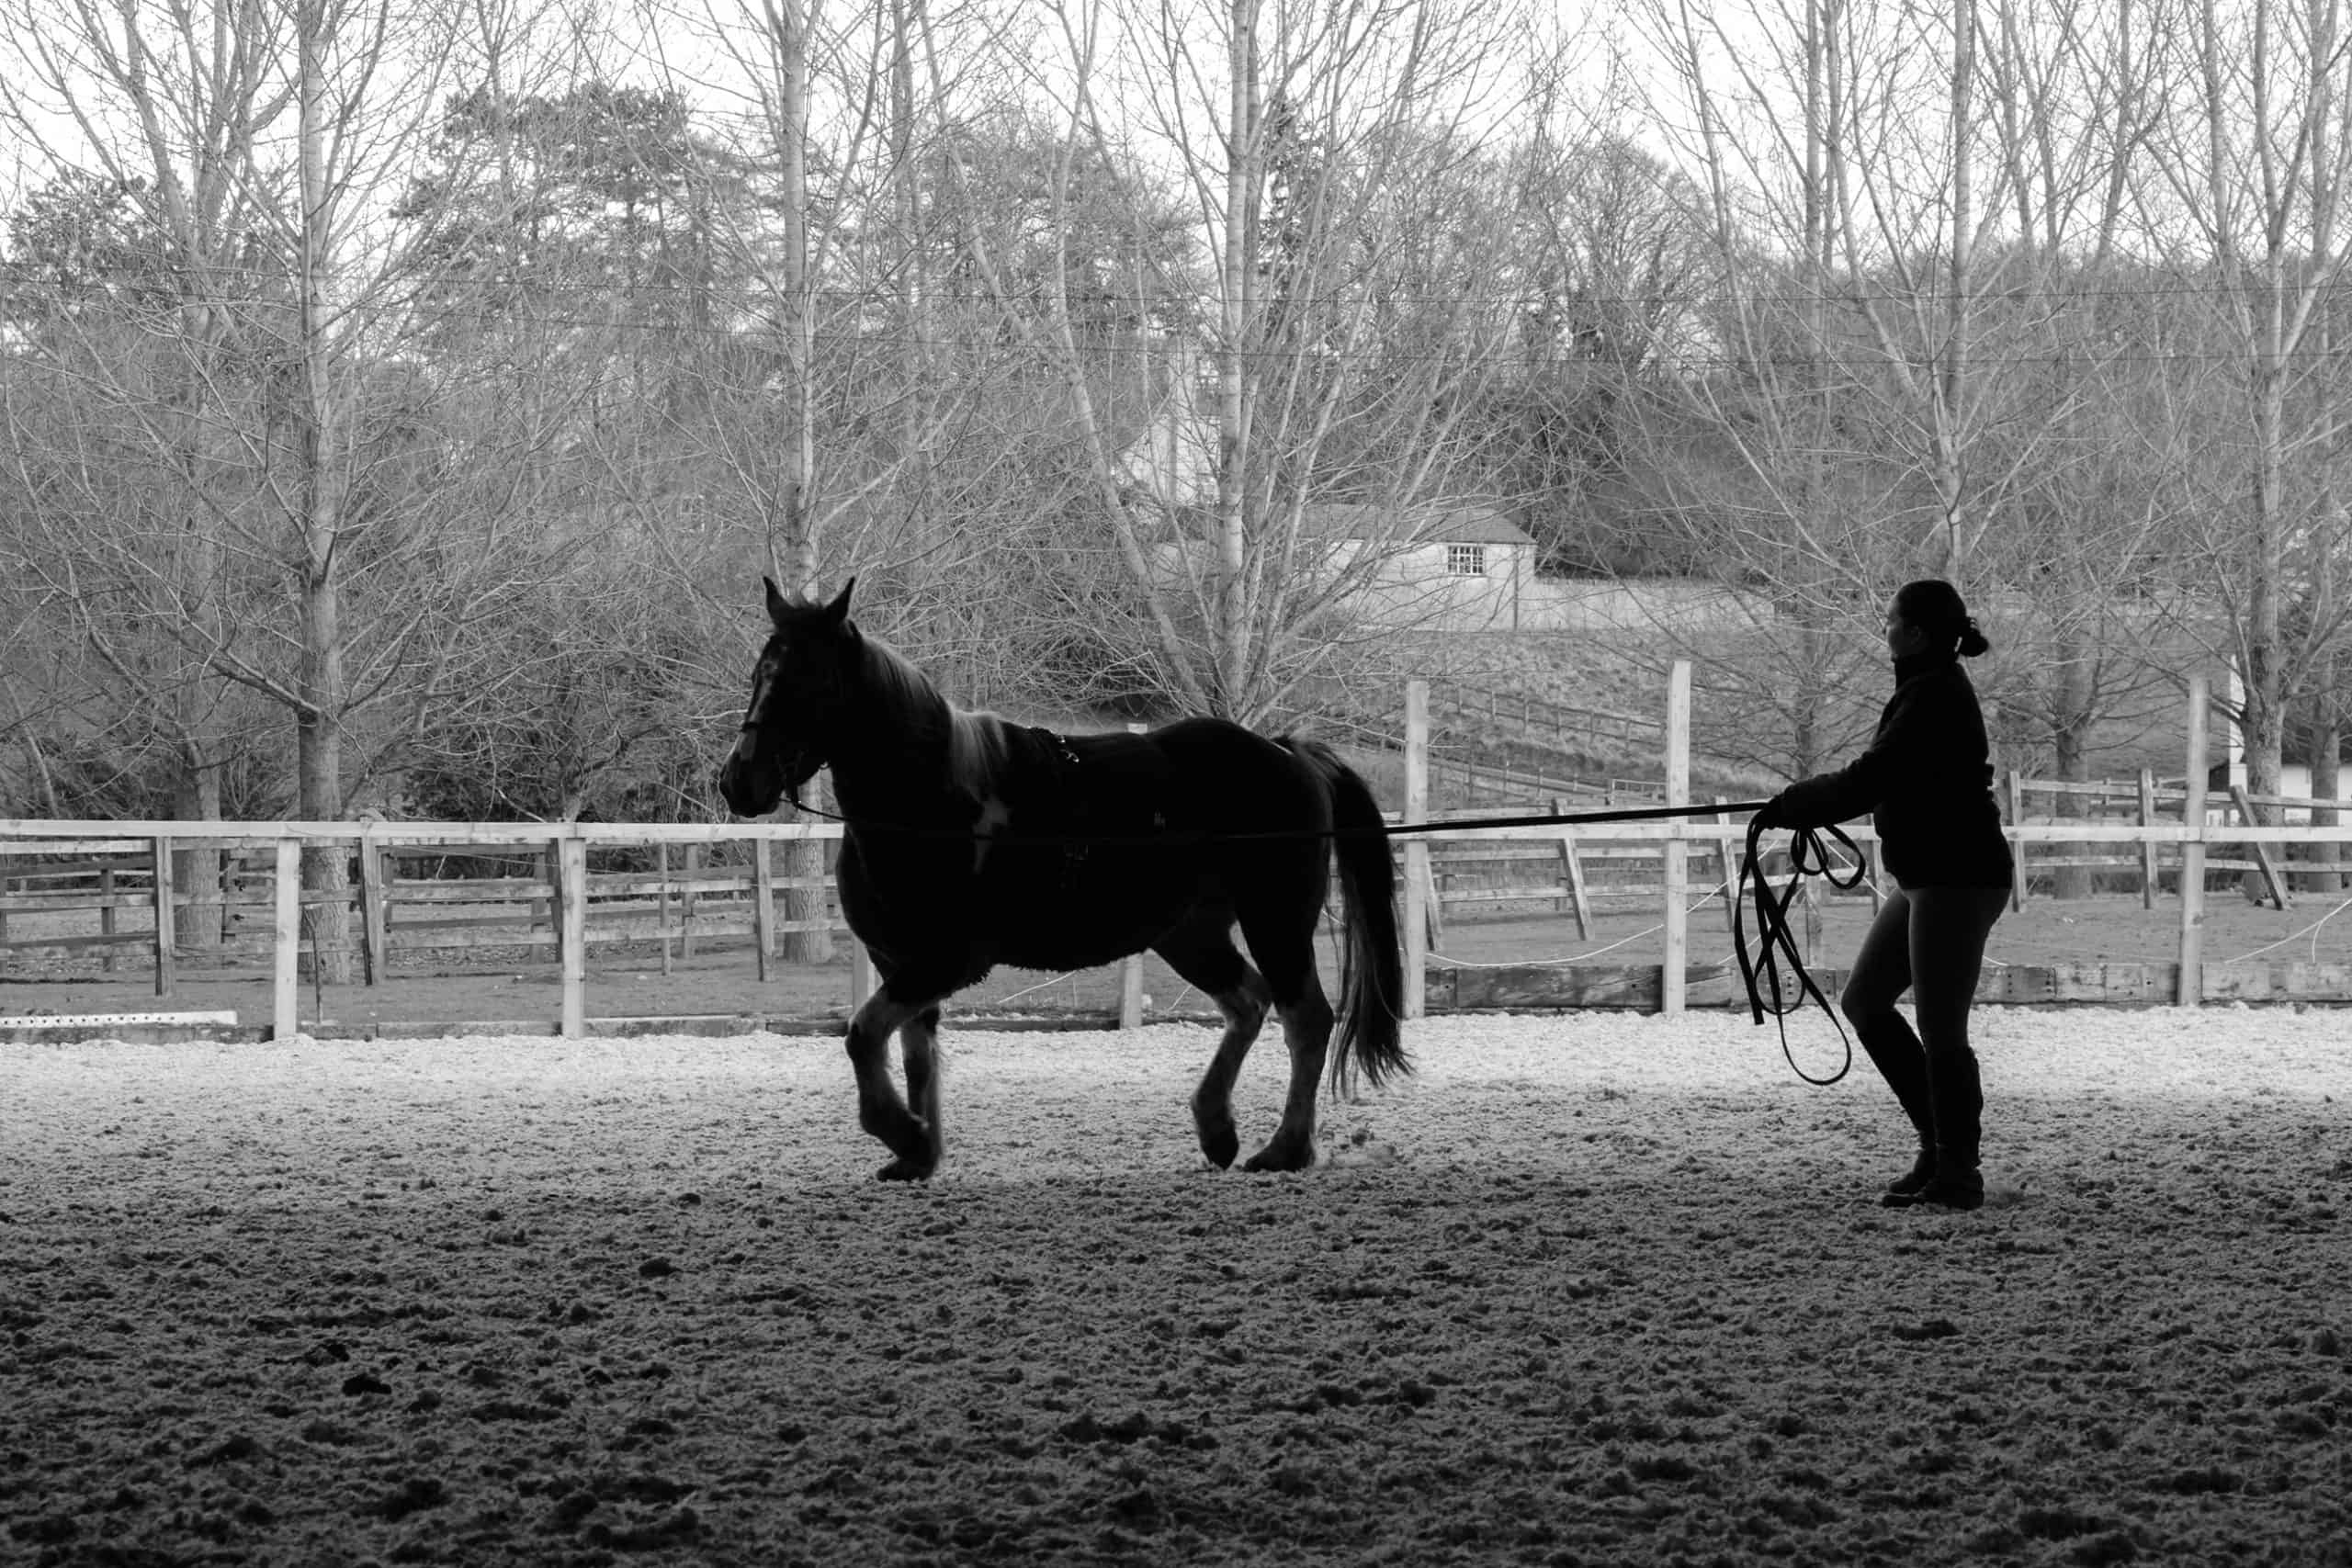 woman and pony in silhouette. Horse being exercised on long reigns on soft arena surface within a countryside backdrop